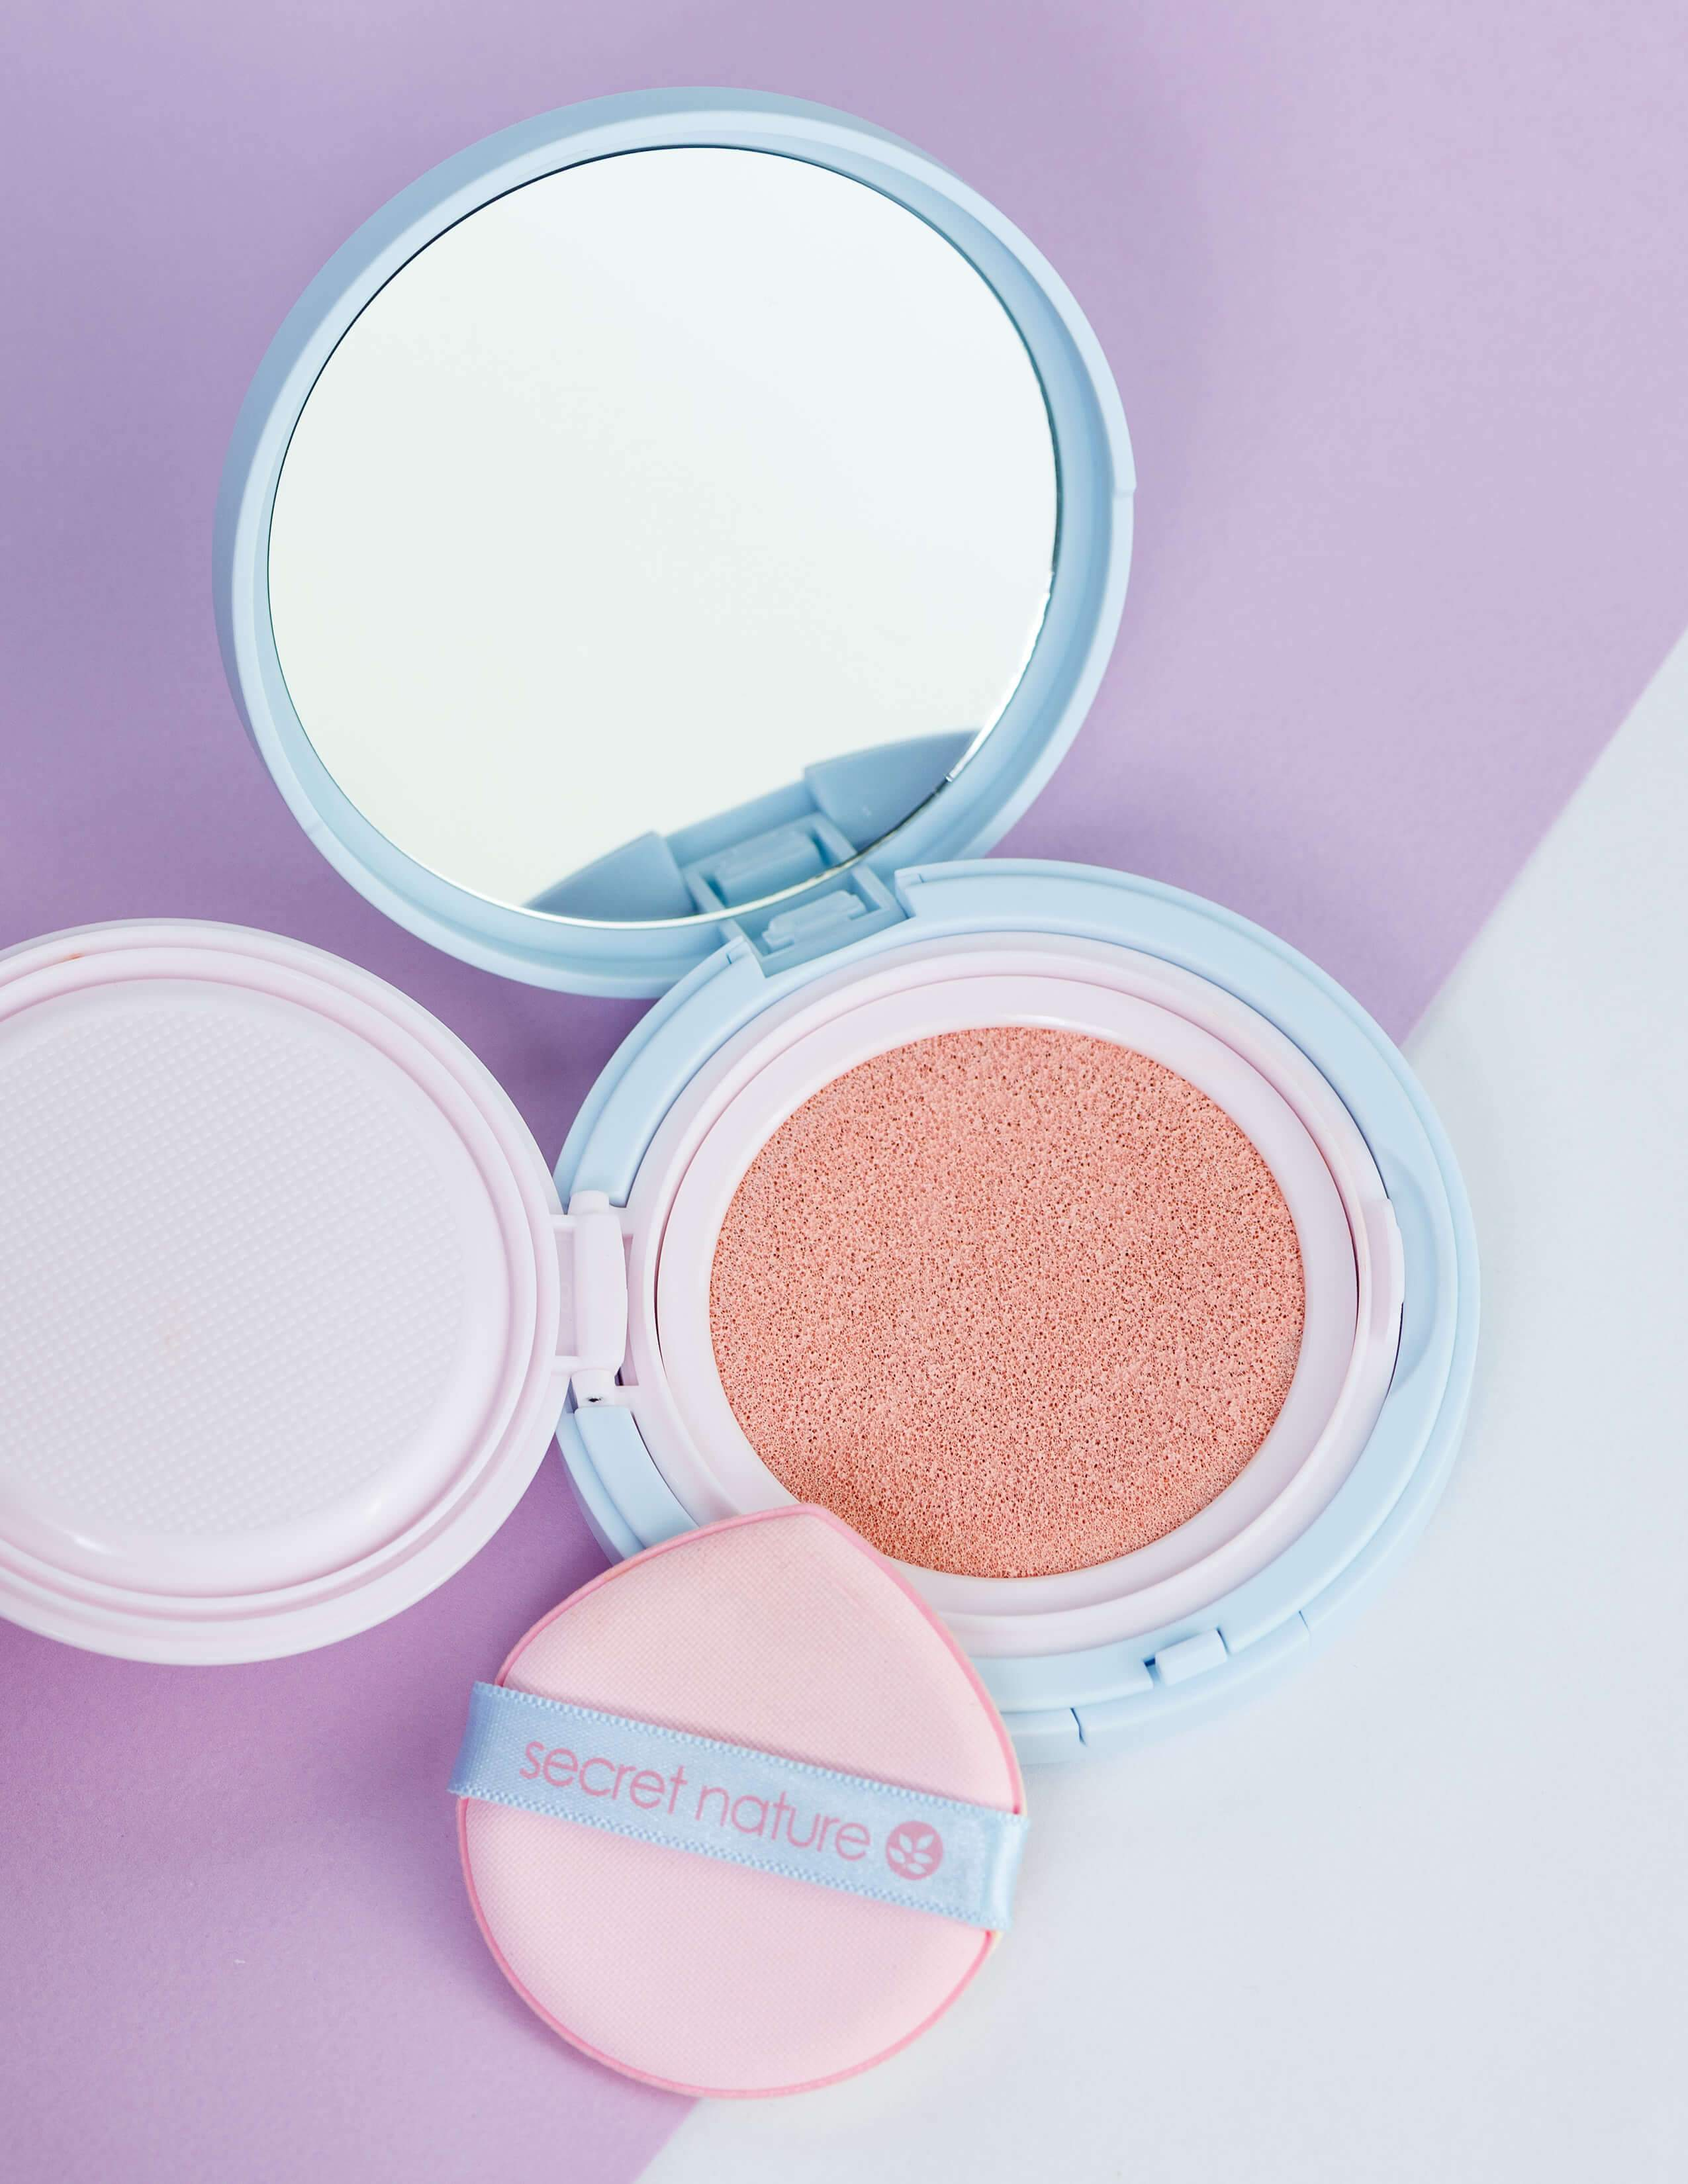 Cherry Blossom Pink Tone Up Sun Cushion